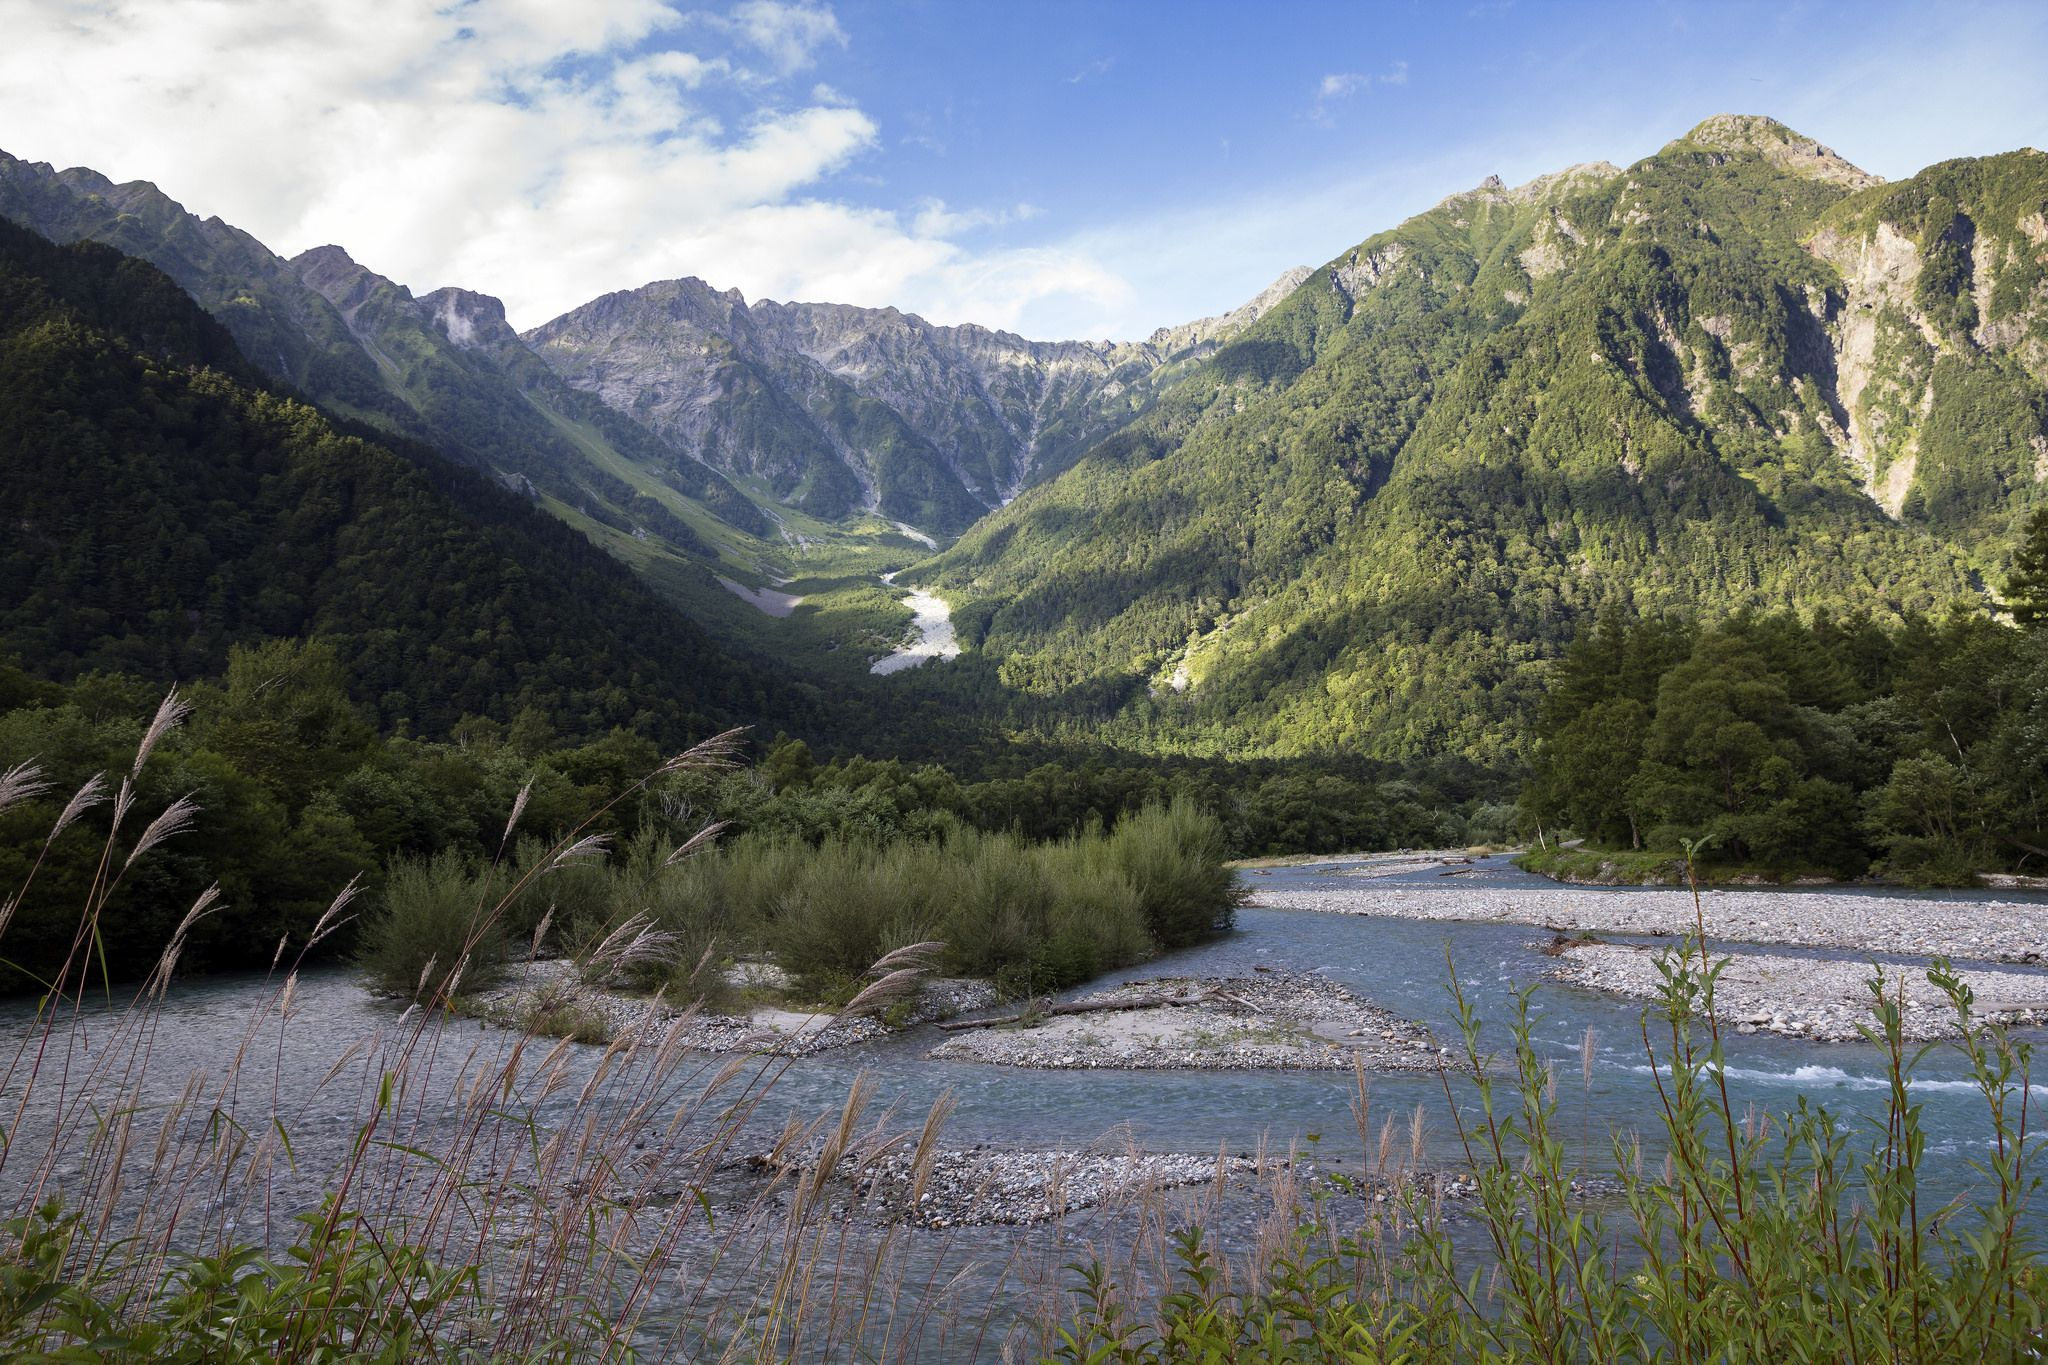 https://flic.kr/p/GvYhBh | The river and the mountains | The Kamikochi valley